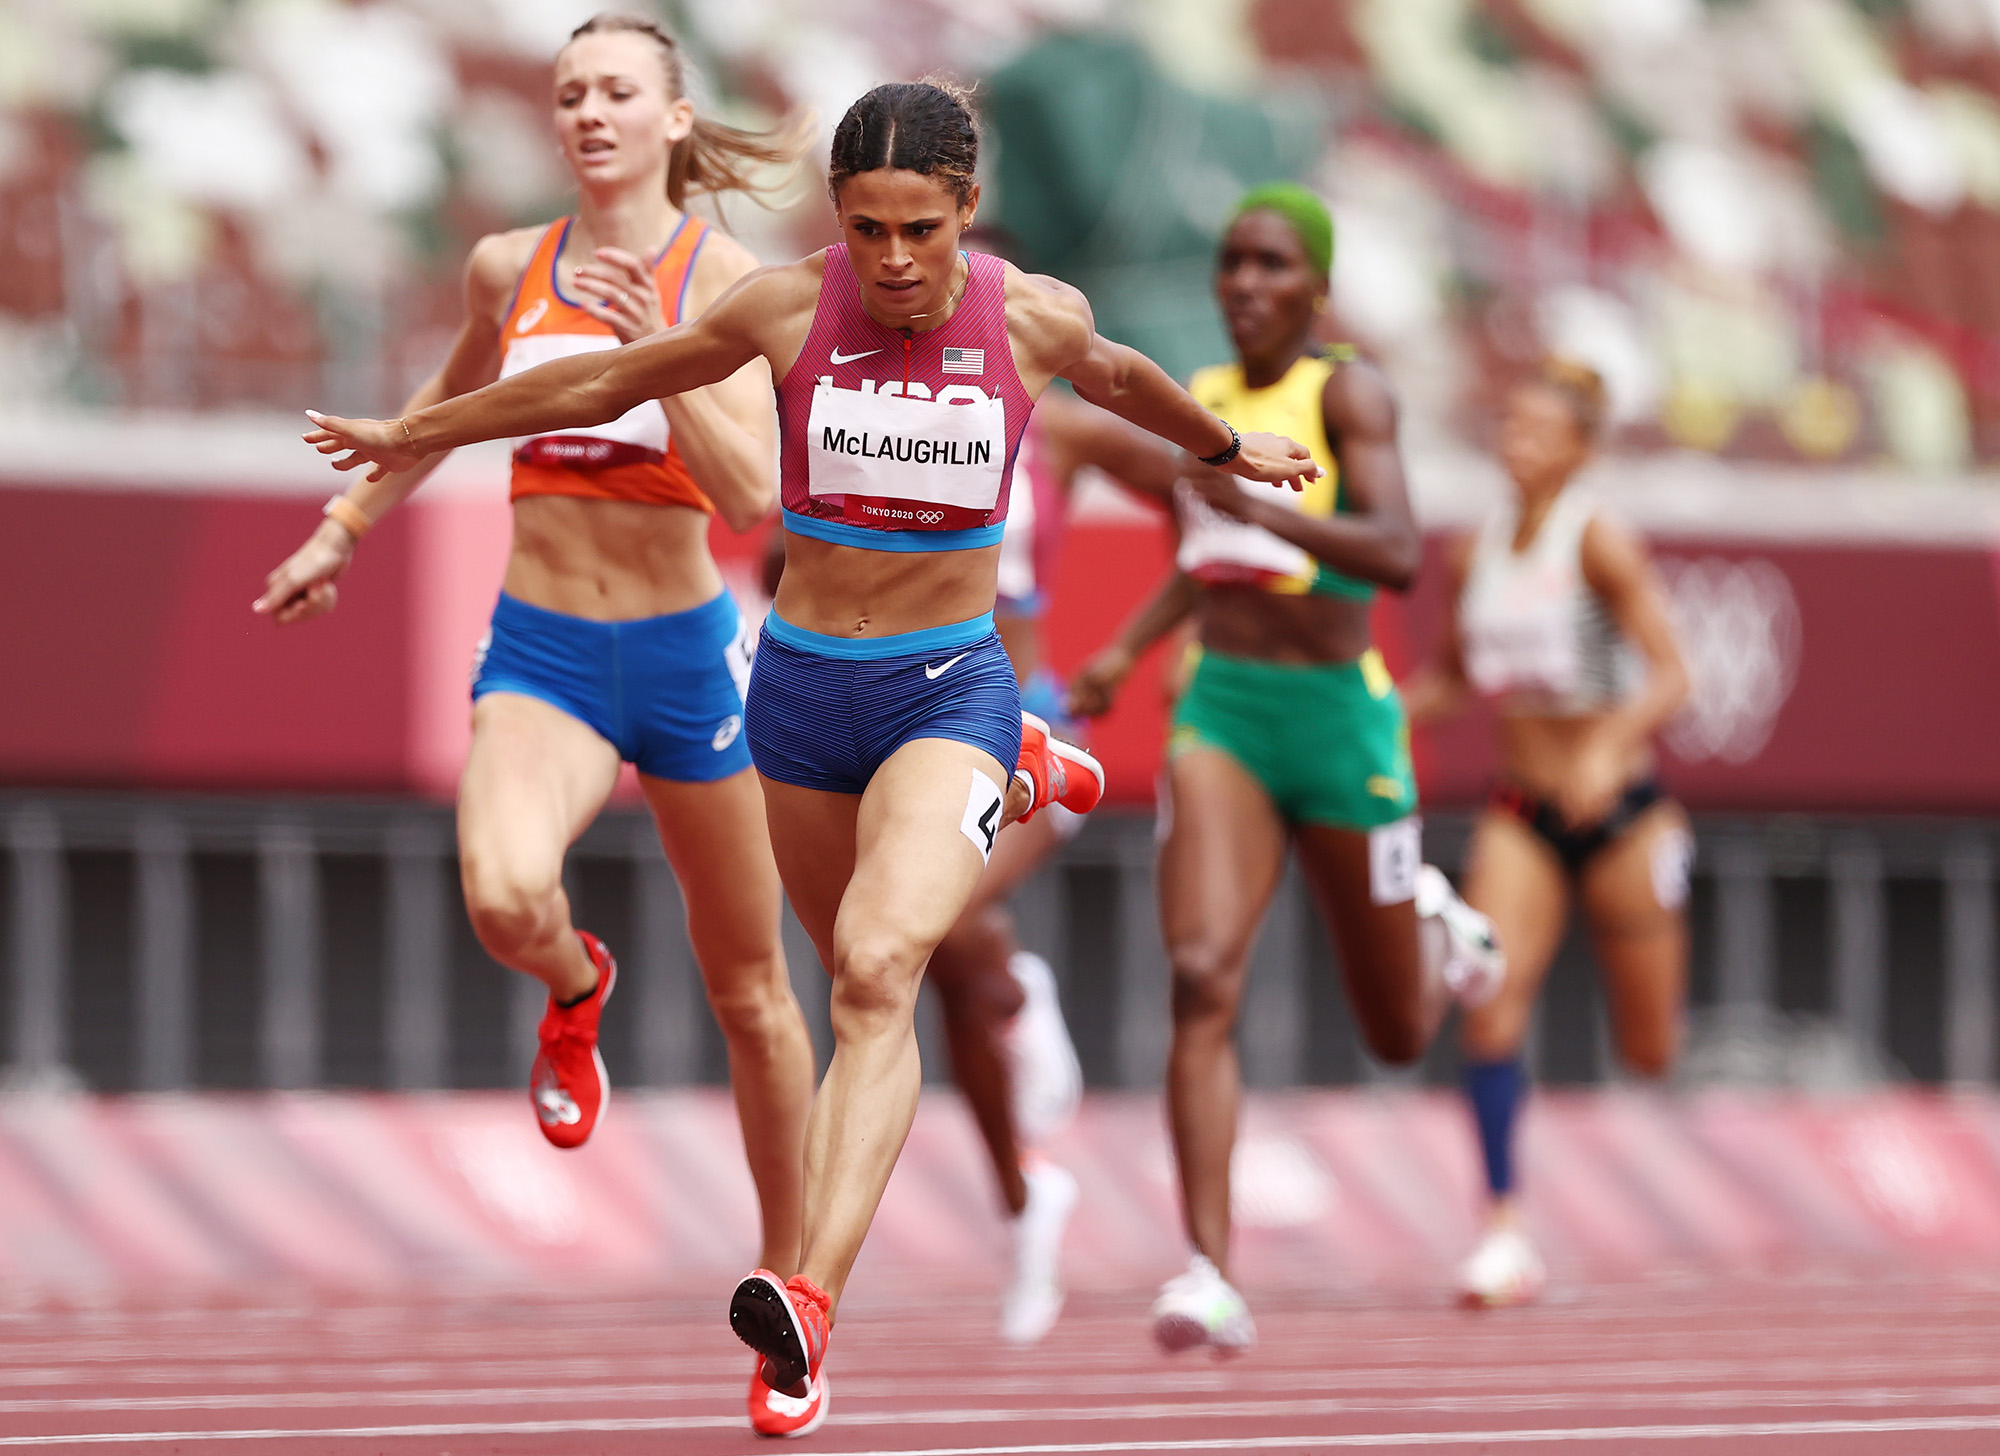 Sydney McLaughlin smashes women's 400m hurdles world record in superb Olympic final - Daily Maverick